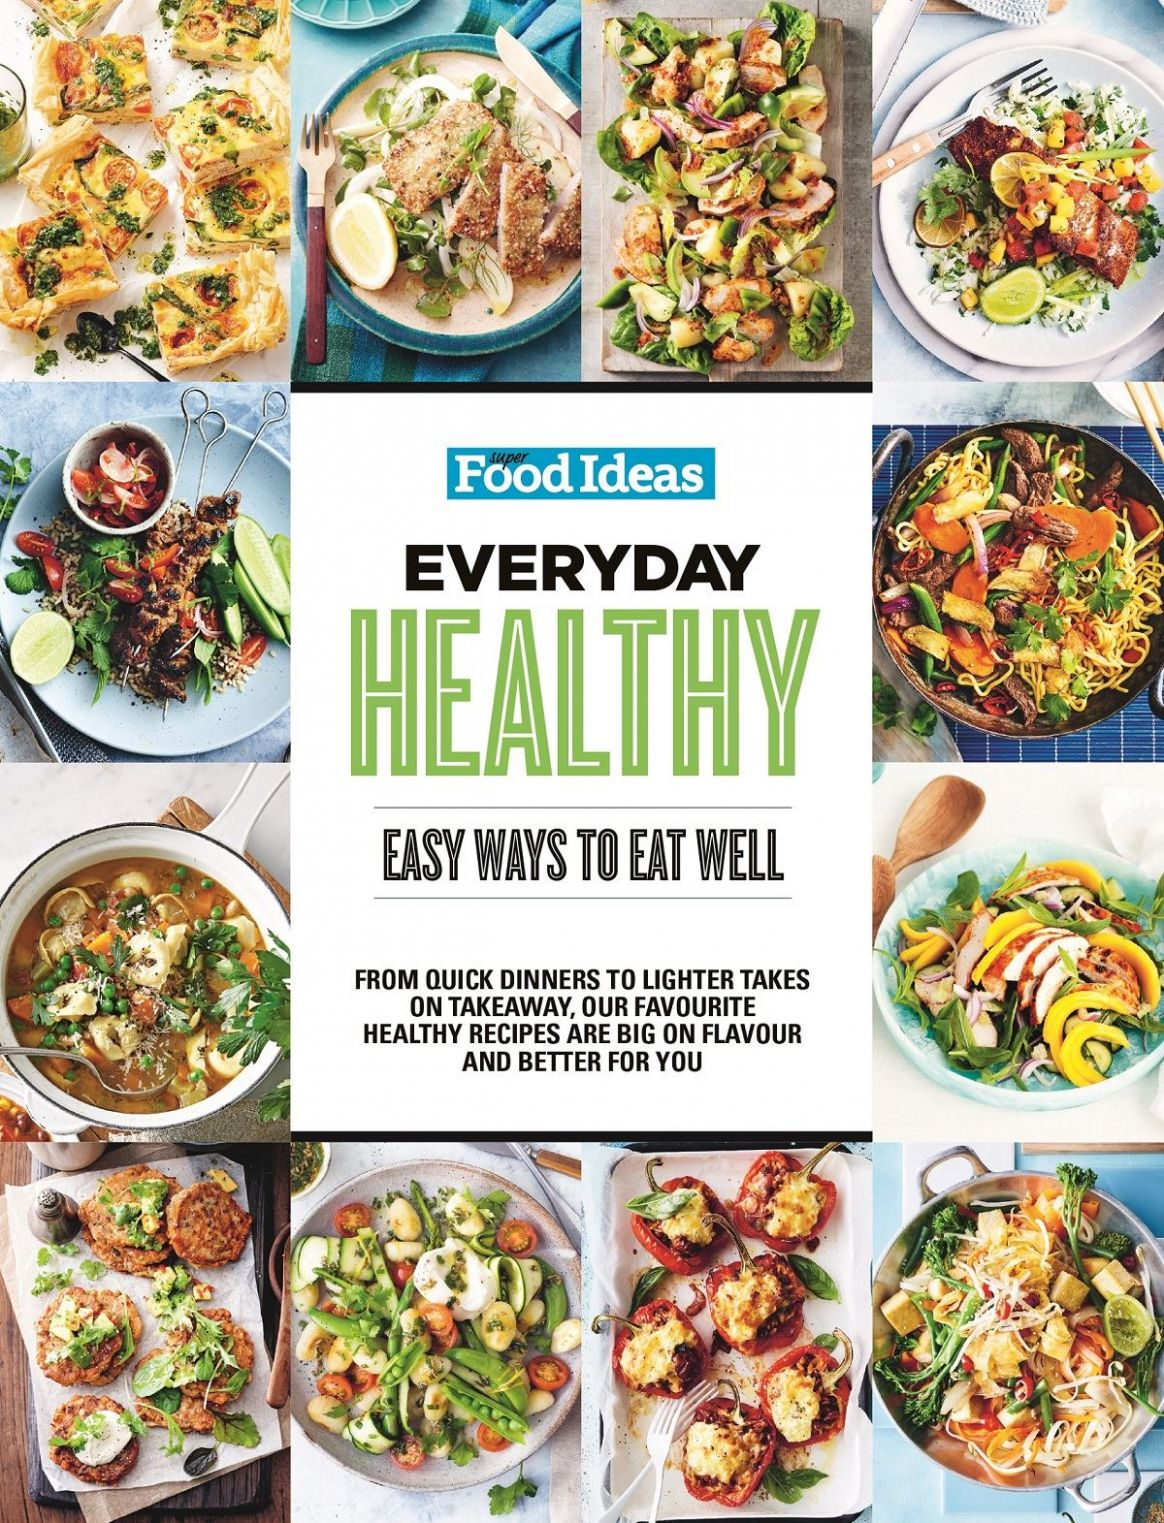 Super Food Ideas Everyday Healthy Cookbook | Magsonline - Healthy Recipes Everyday